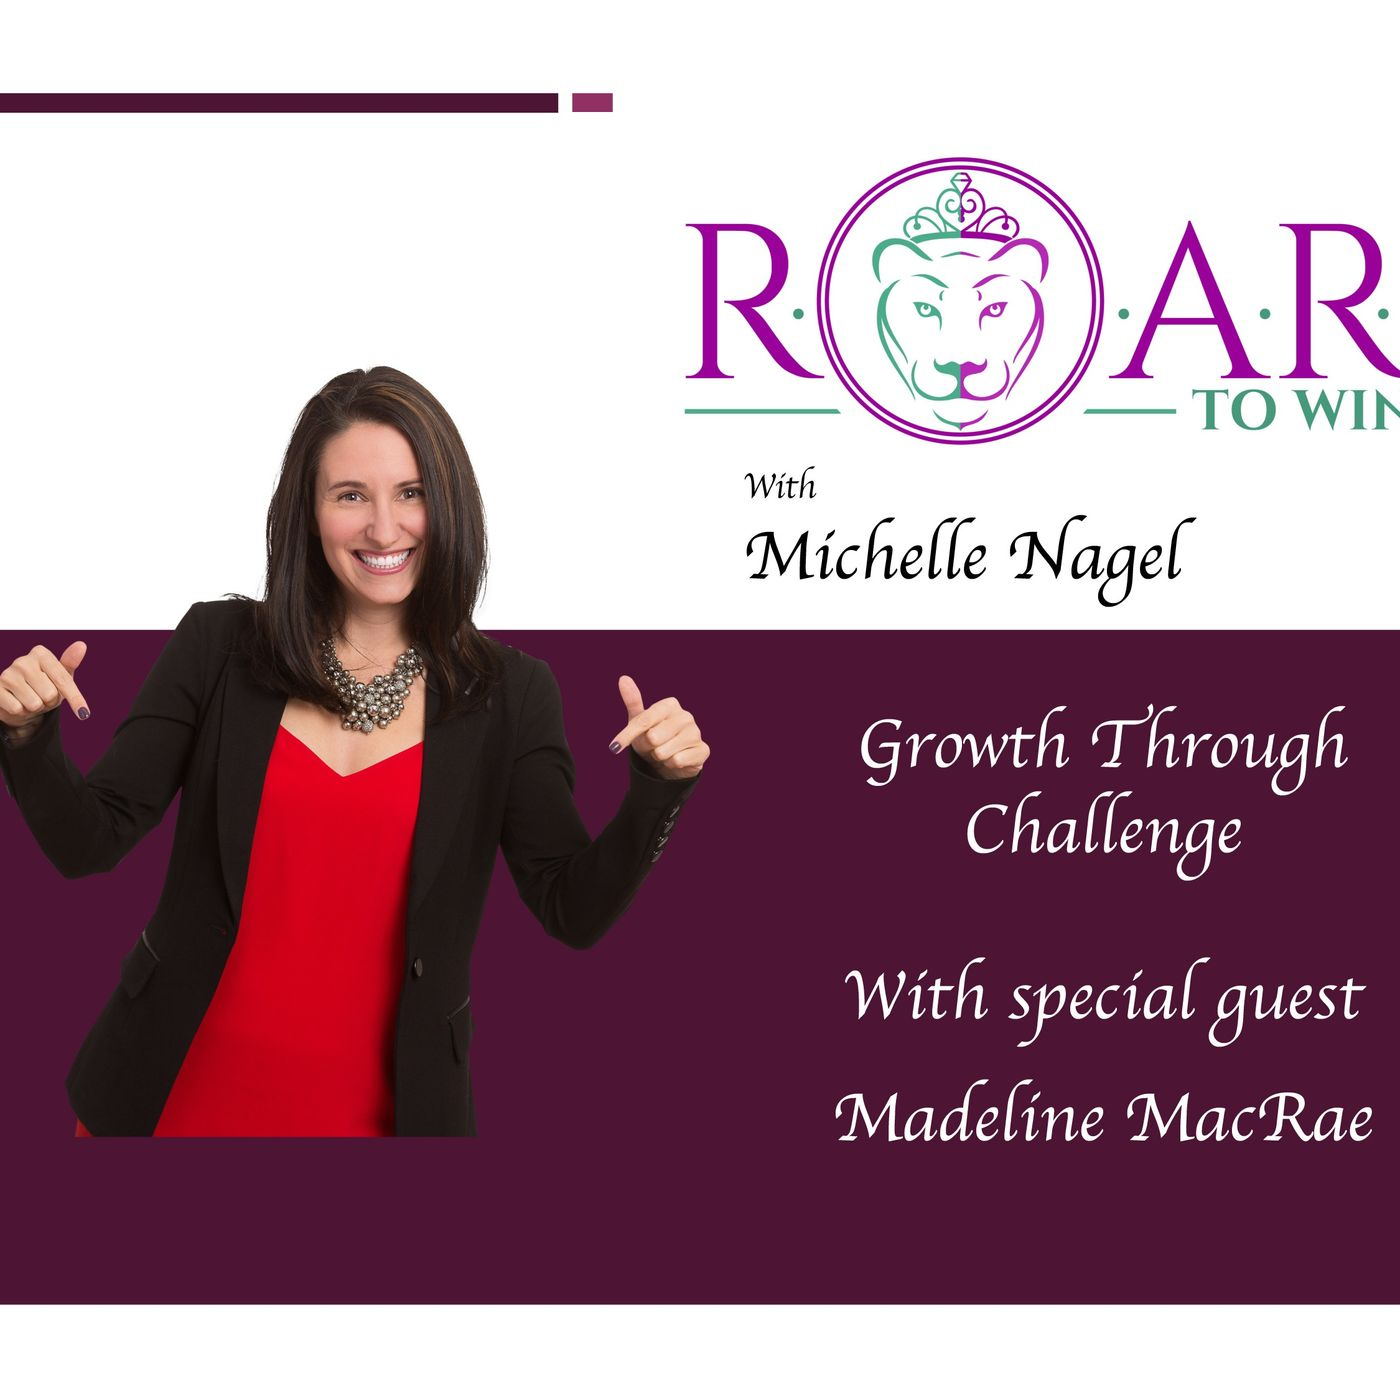 Growth Through Challenge with Madeline MacRae